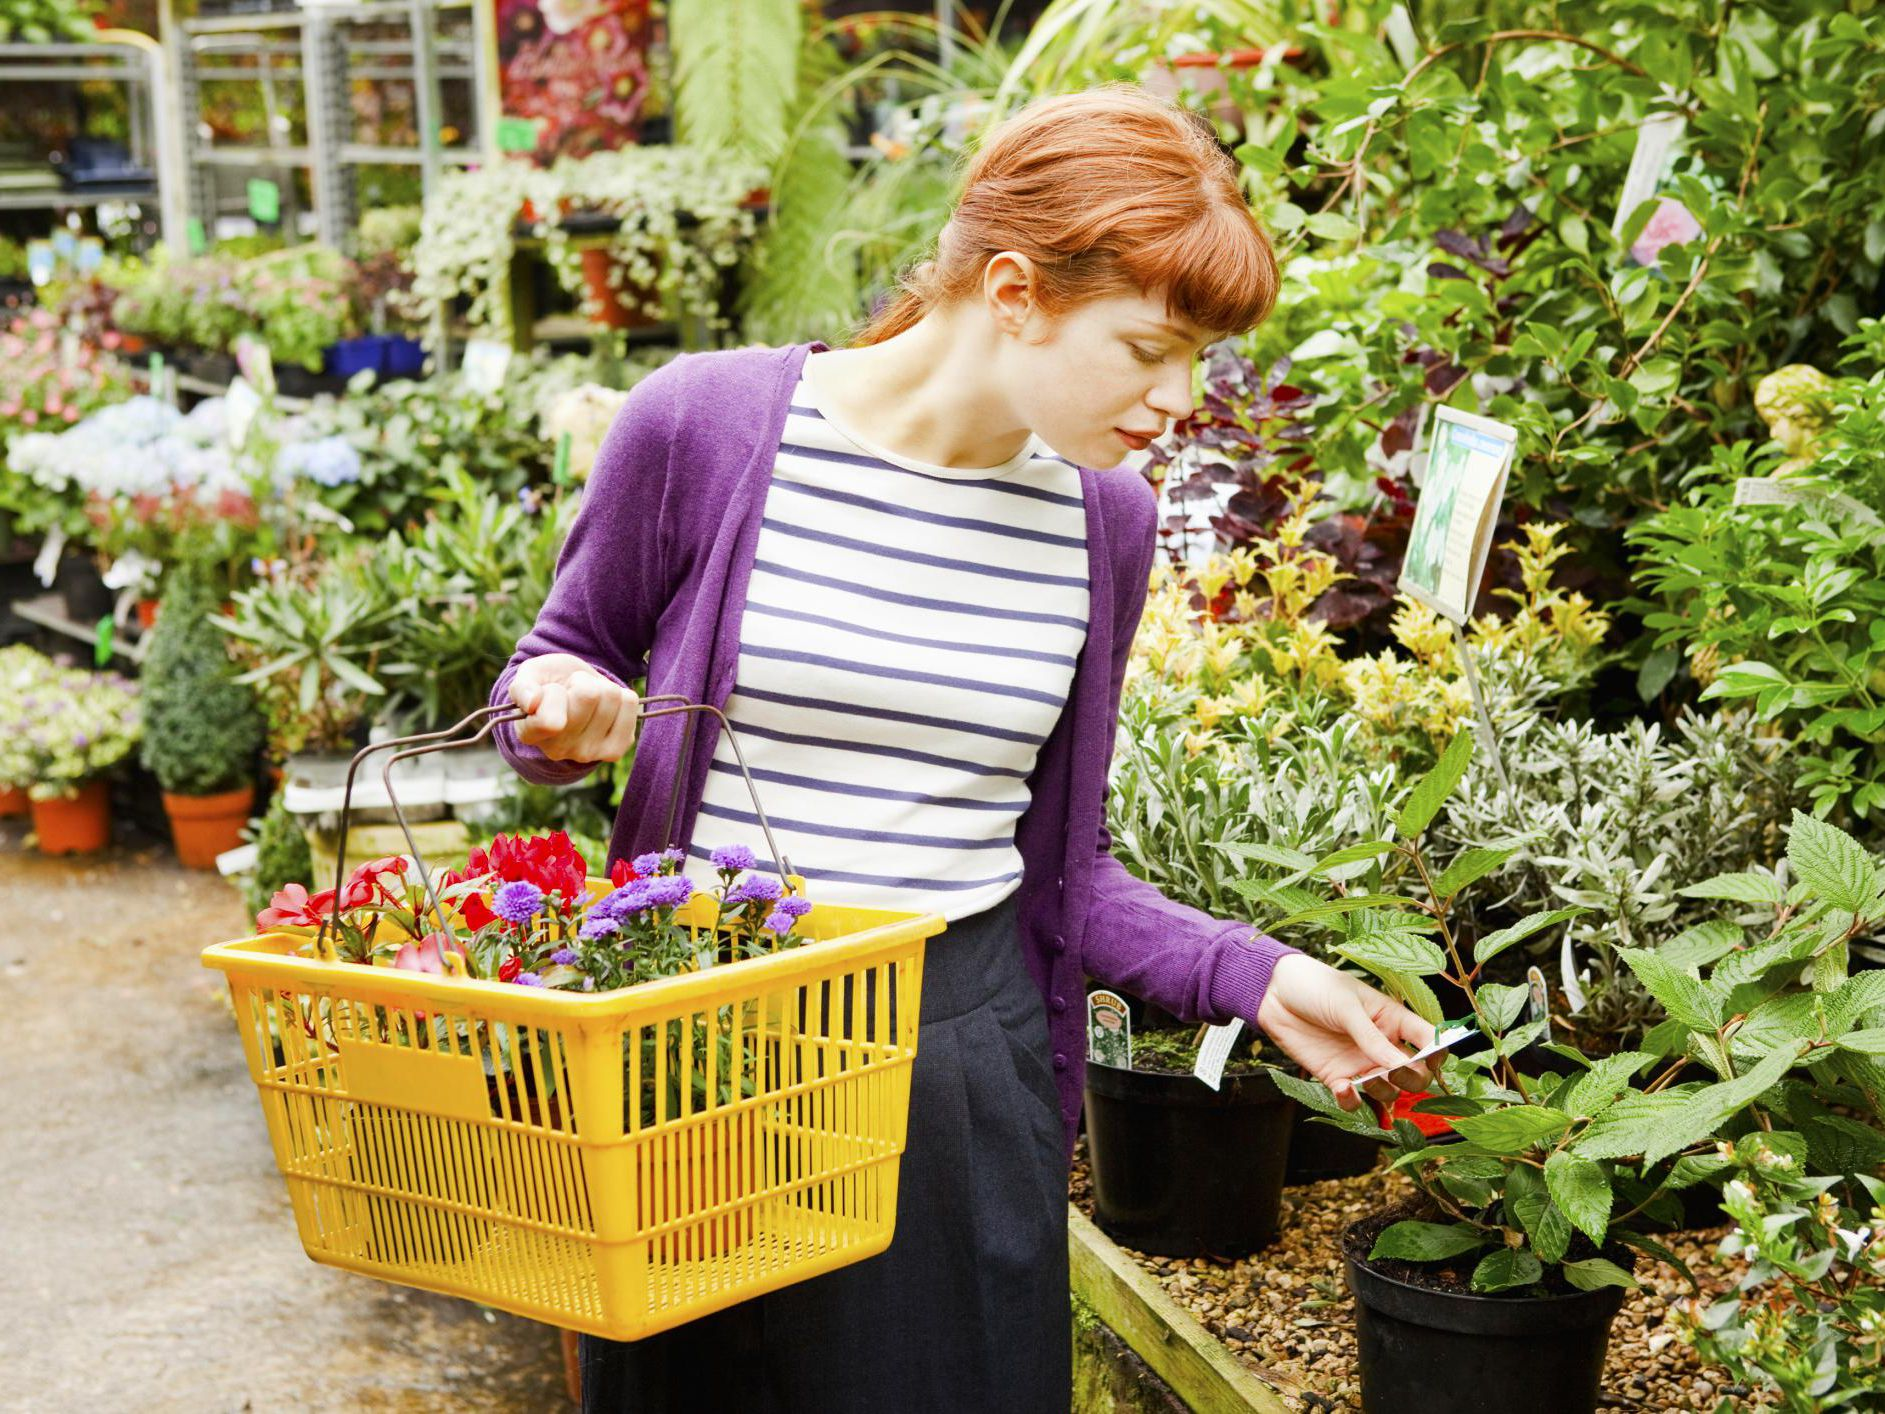 How To Choose Healthy Plants At The Nursery